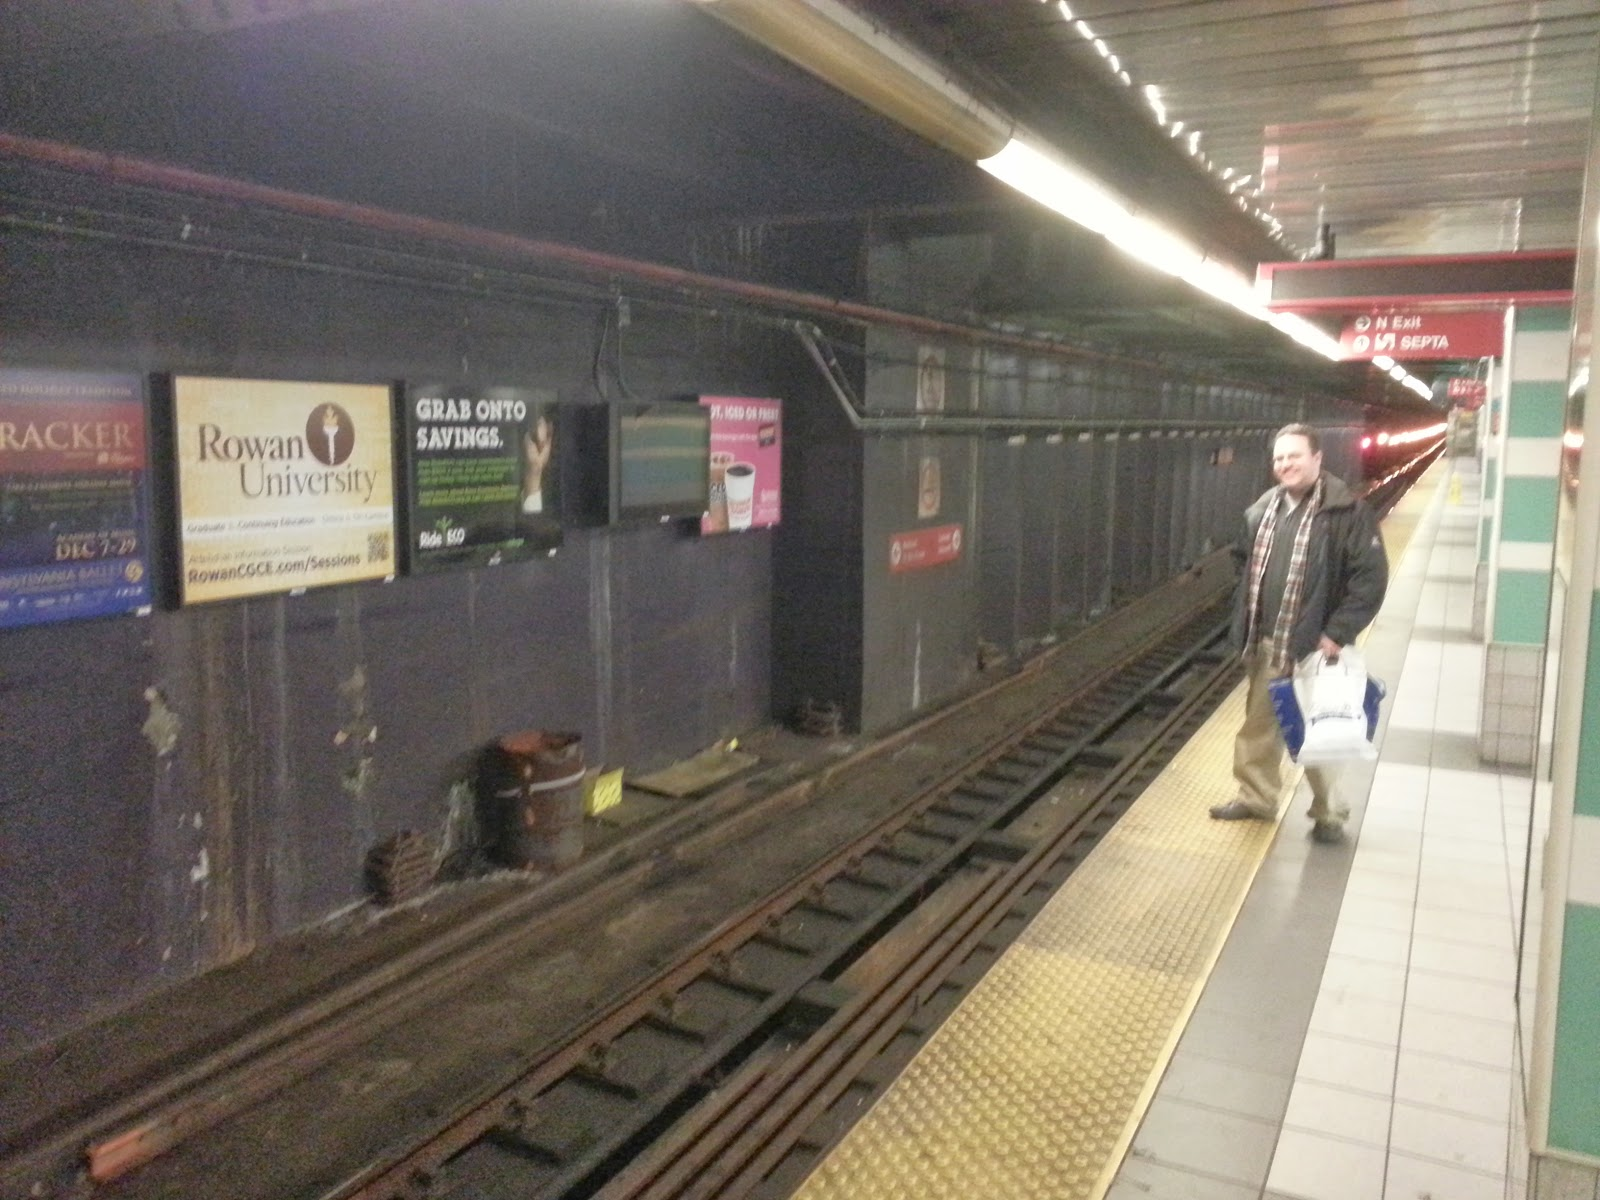 Much like TSW, this subway contains an in-universe reference to the blog author.